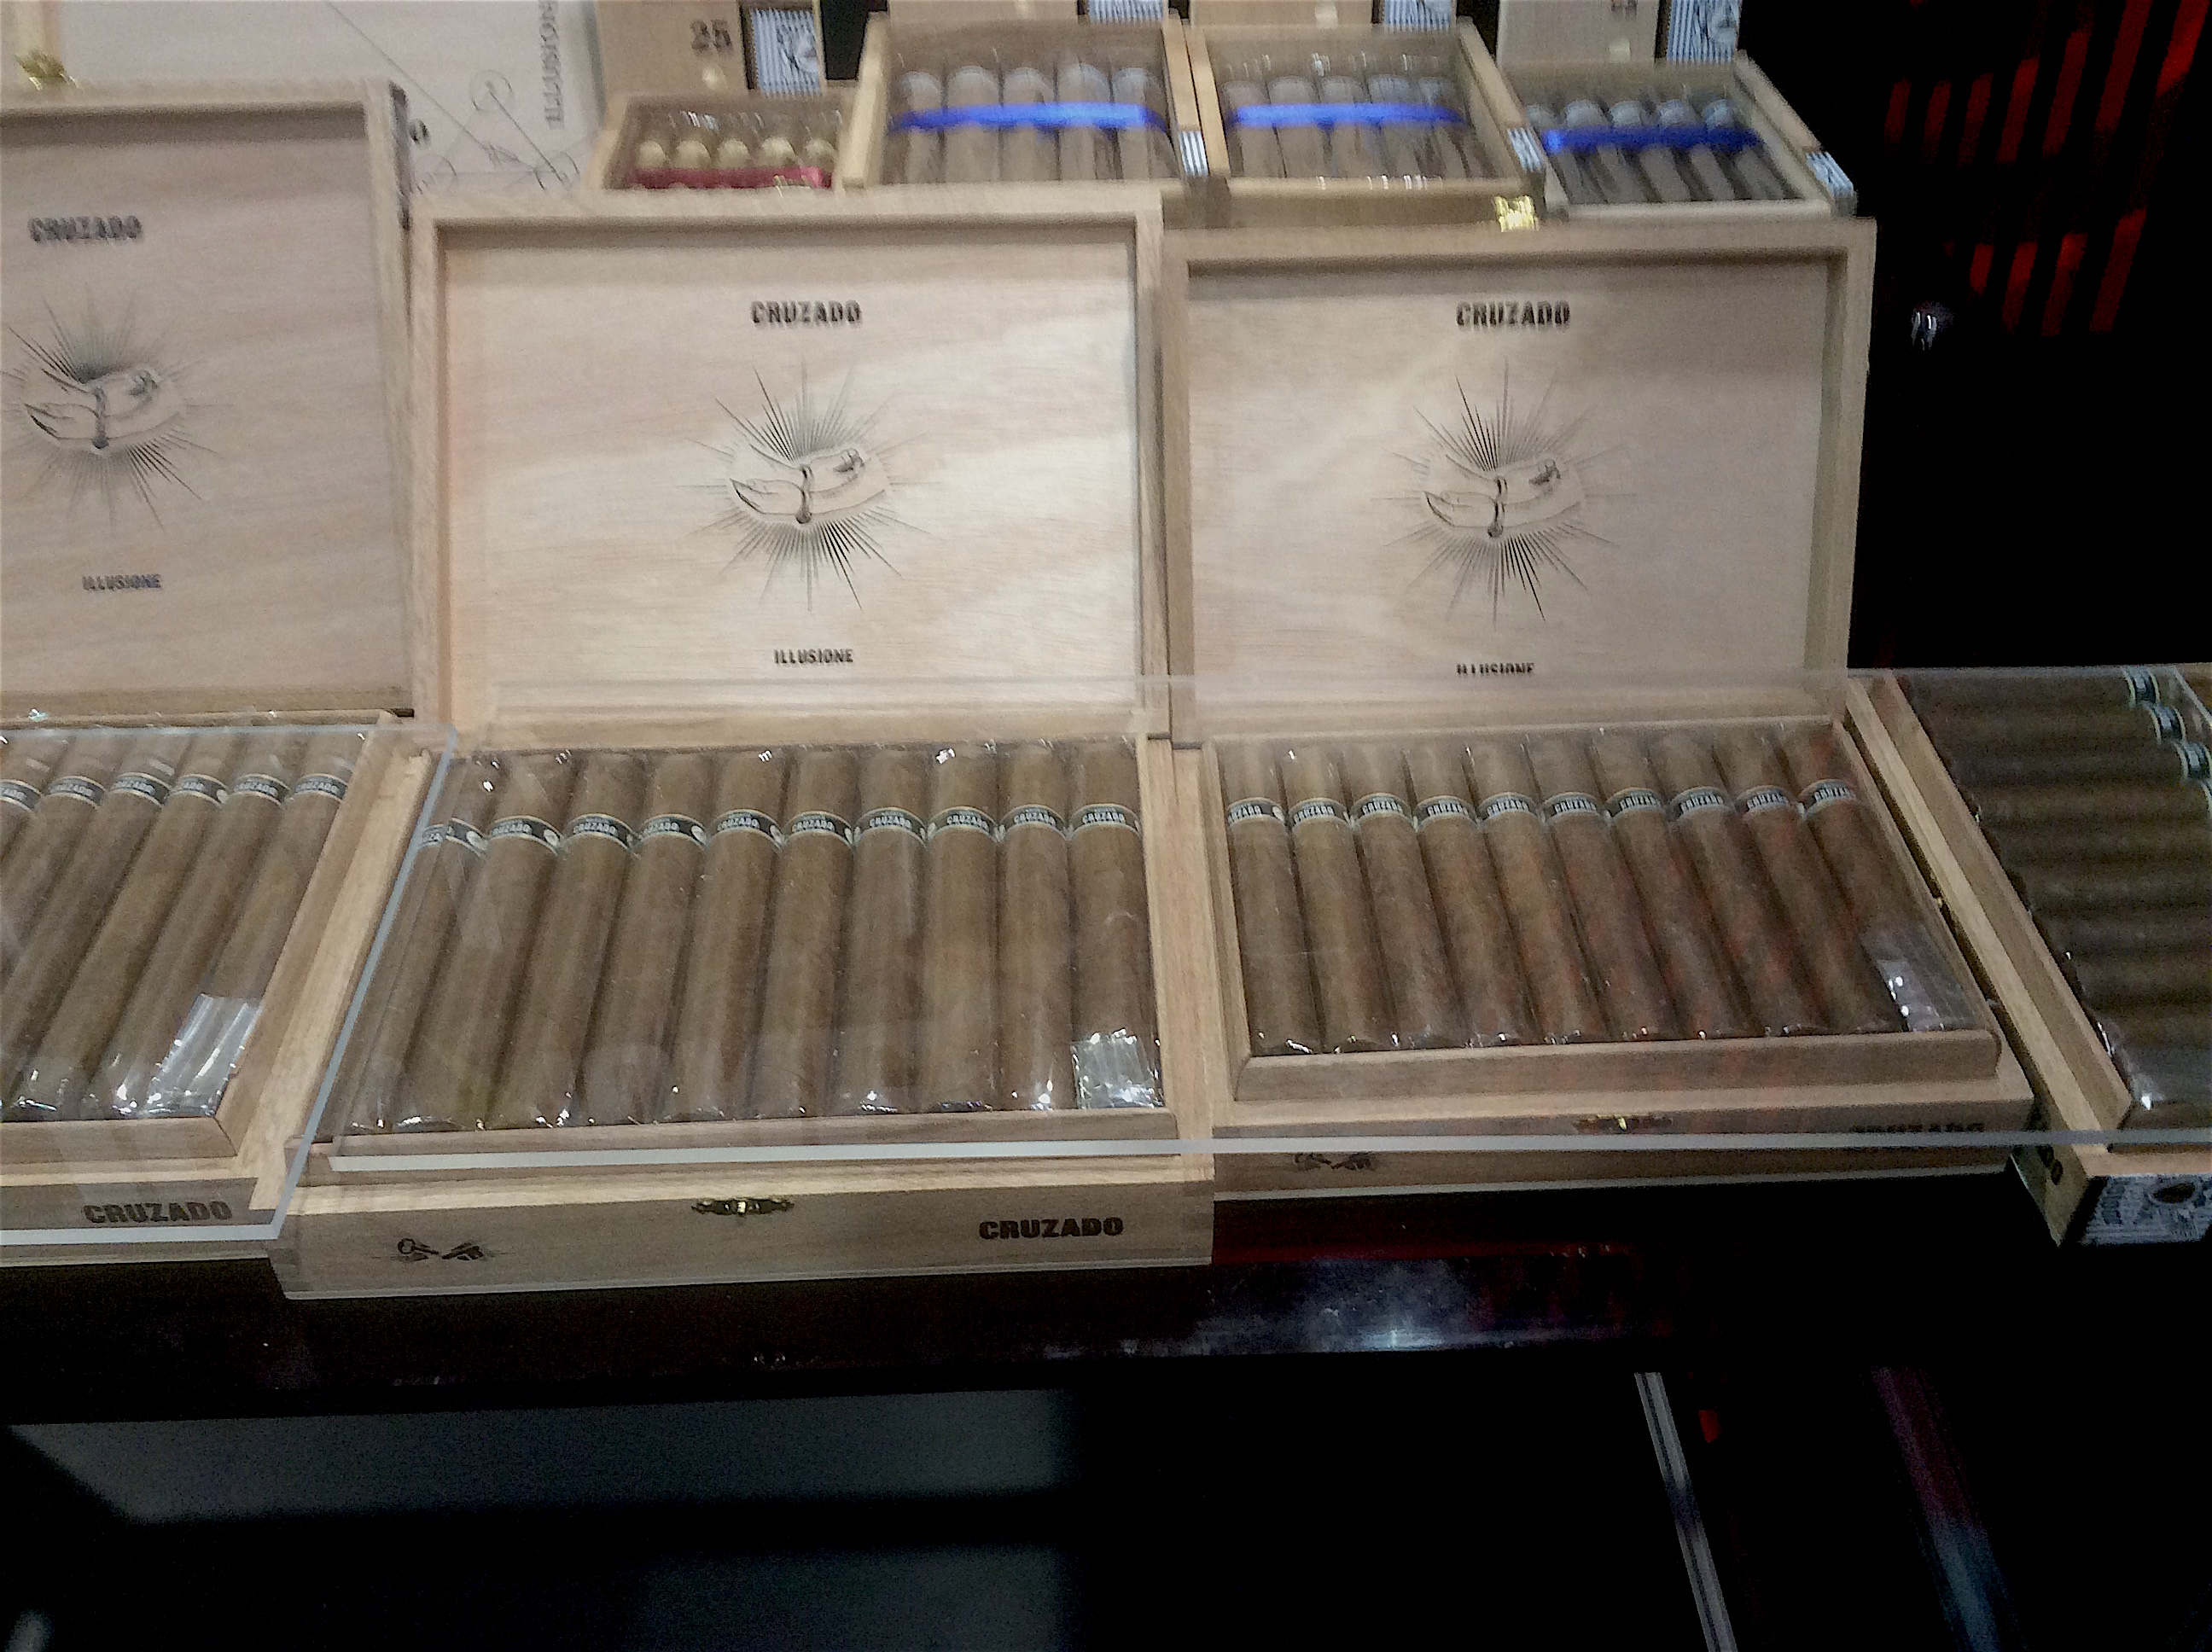 Cigar News: Illusione Introduces Revamped Cruzado Line at 2016 IPCPR